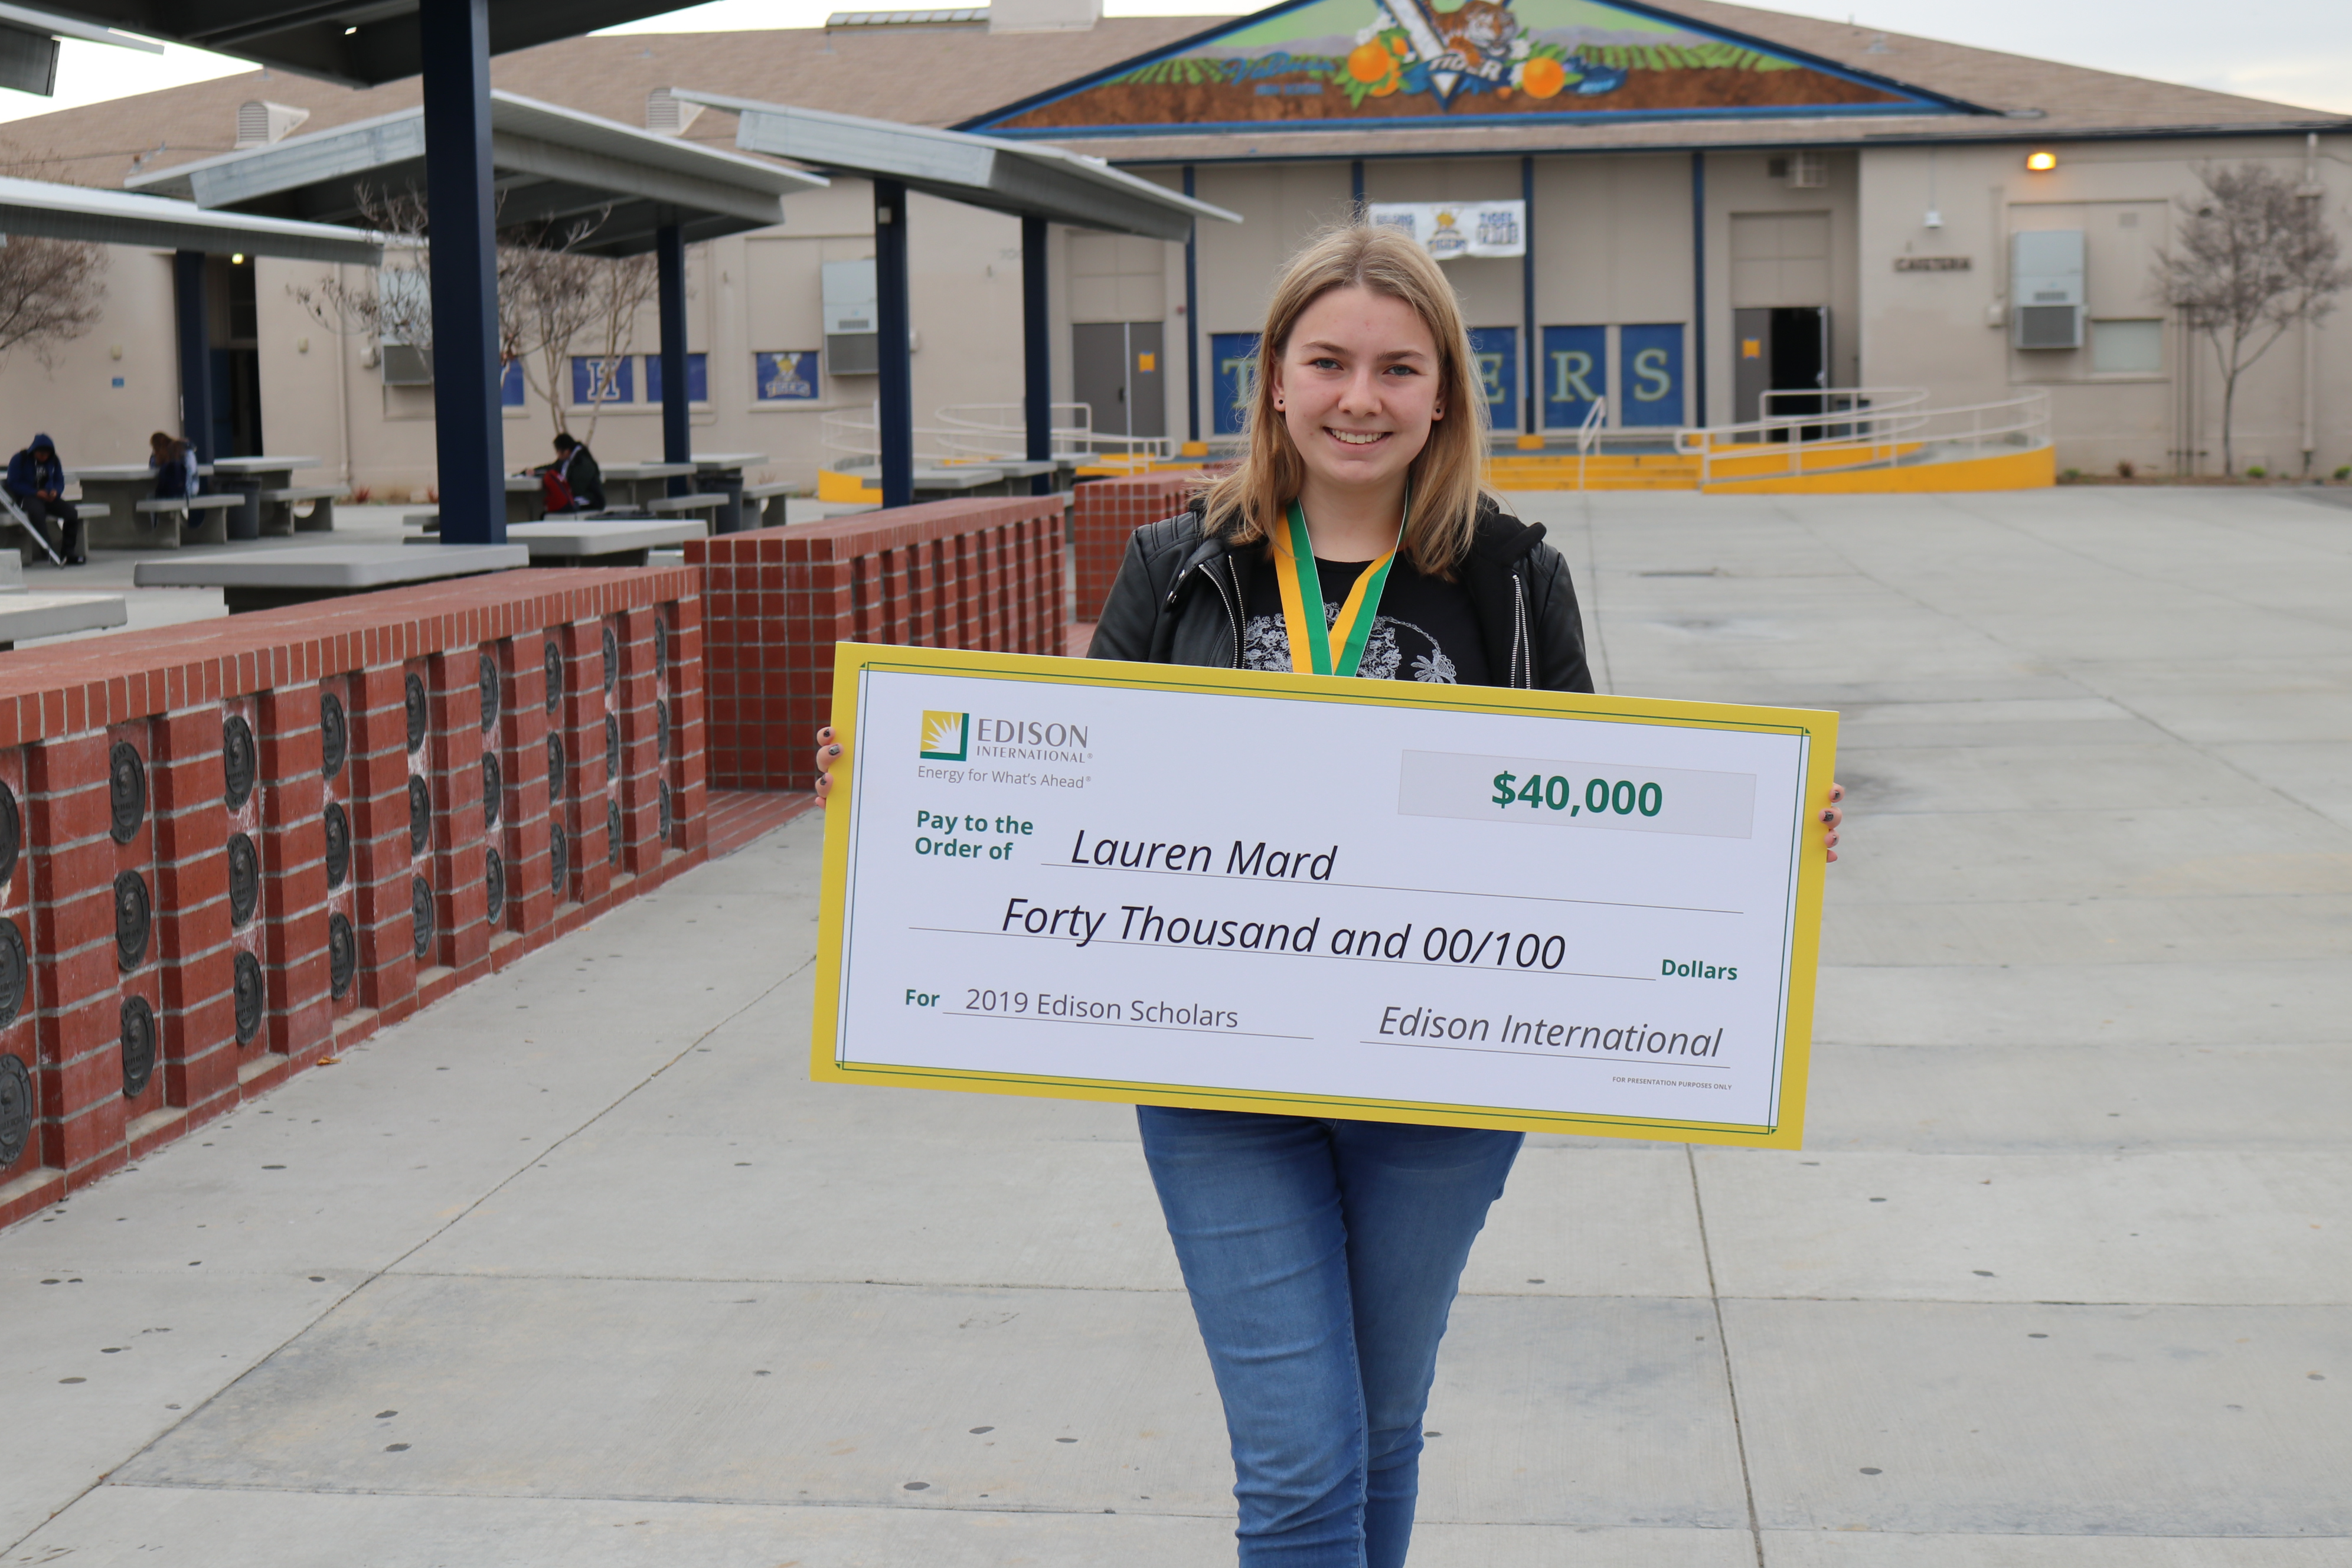 2019 Edison Scholar Lauren Mard at Valencia High School